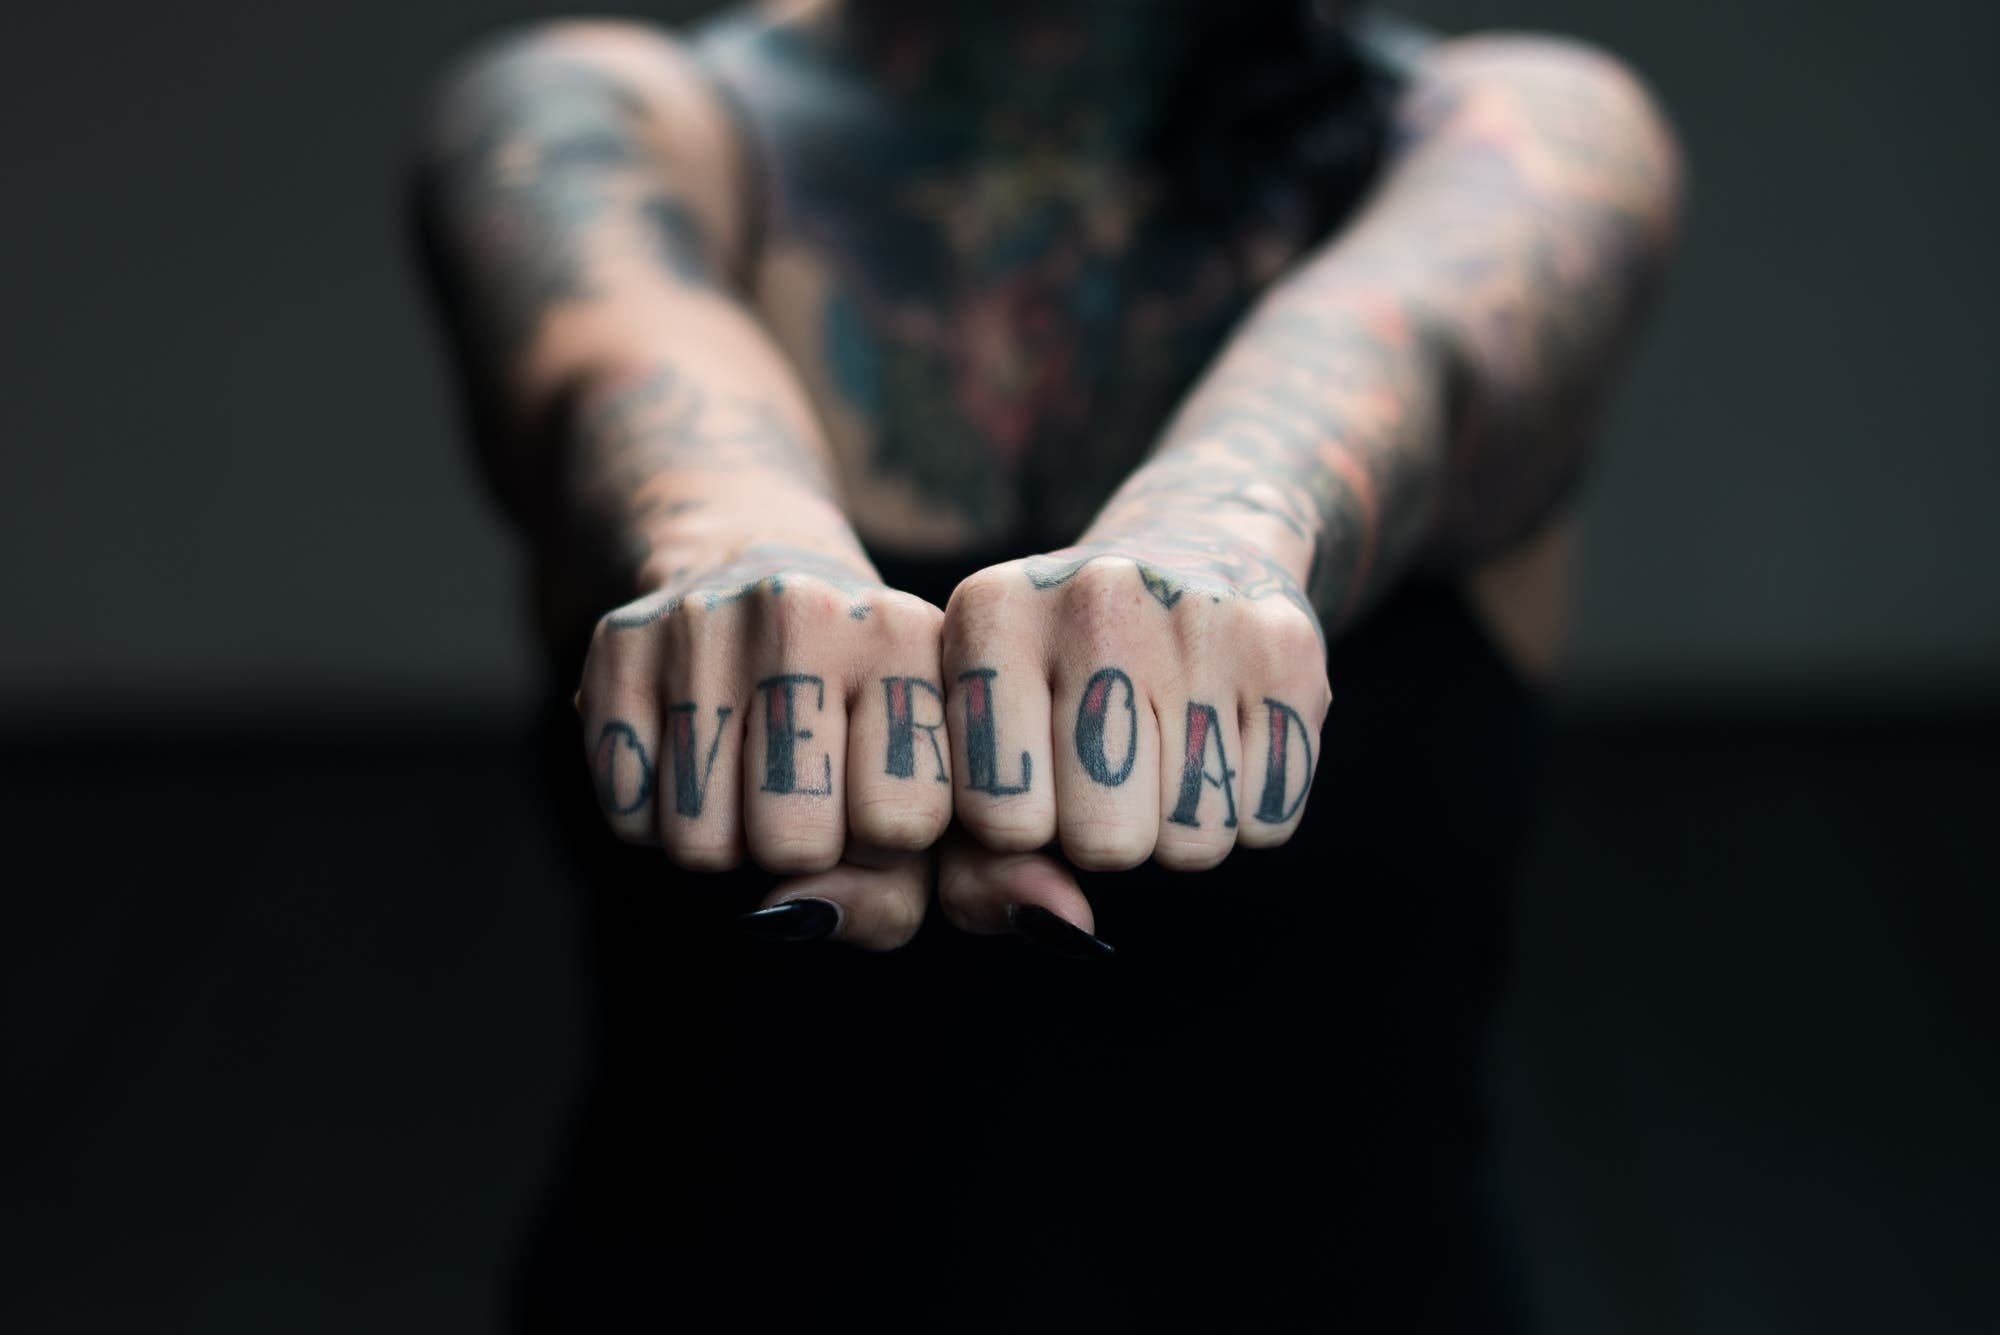 Skin on Canvas: a Portrait Study of Tattooed People (NSFW)